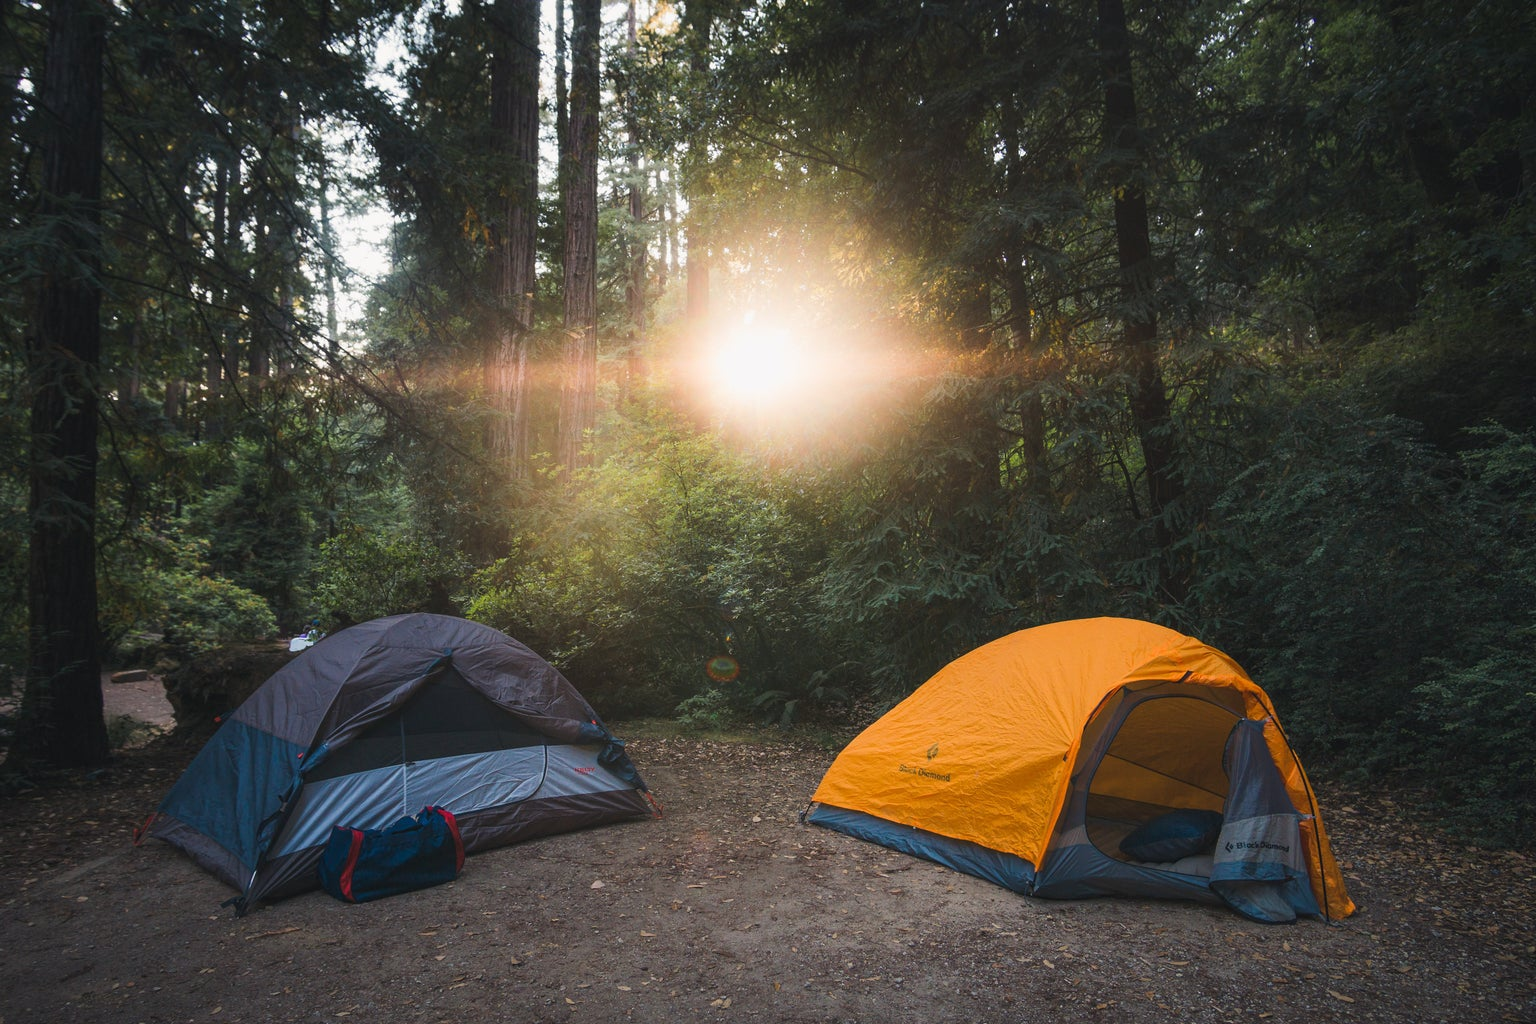 camping tents in forrest